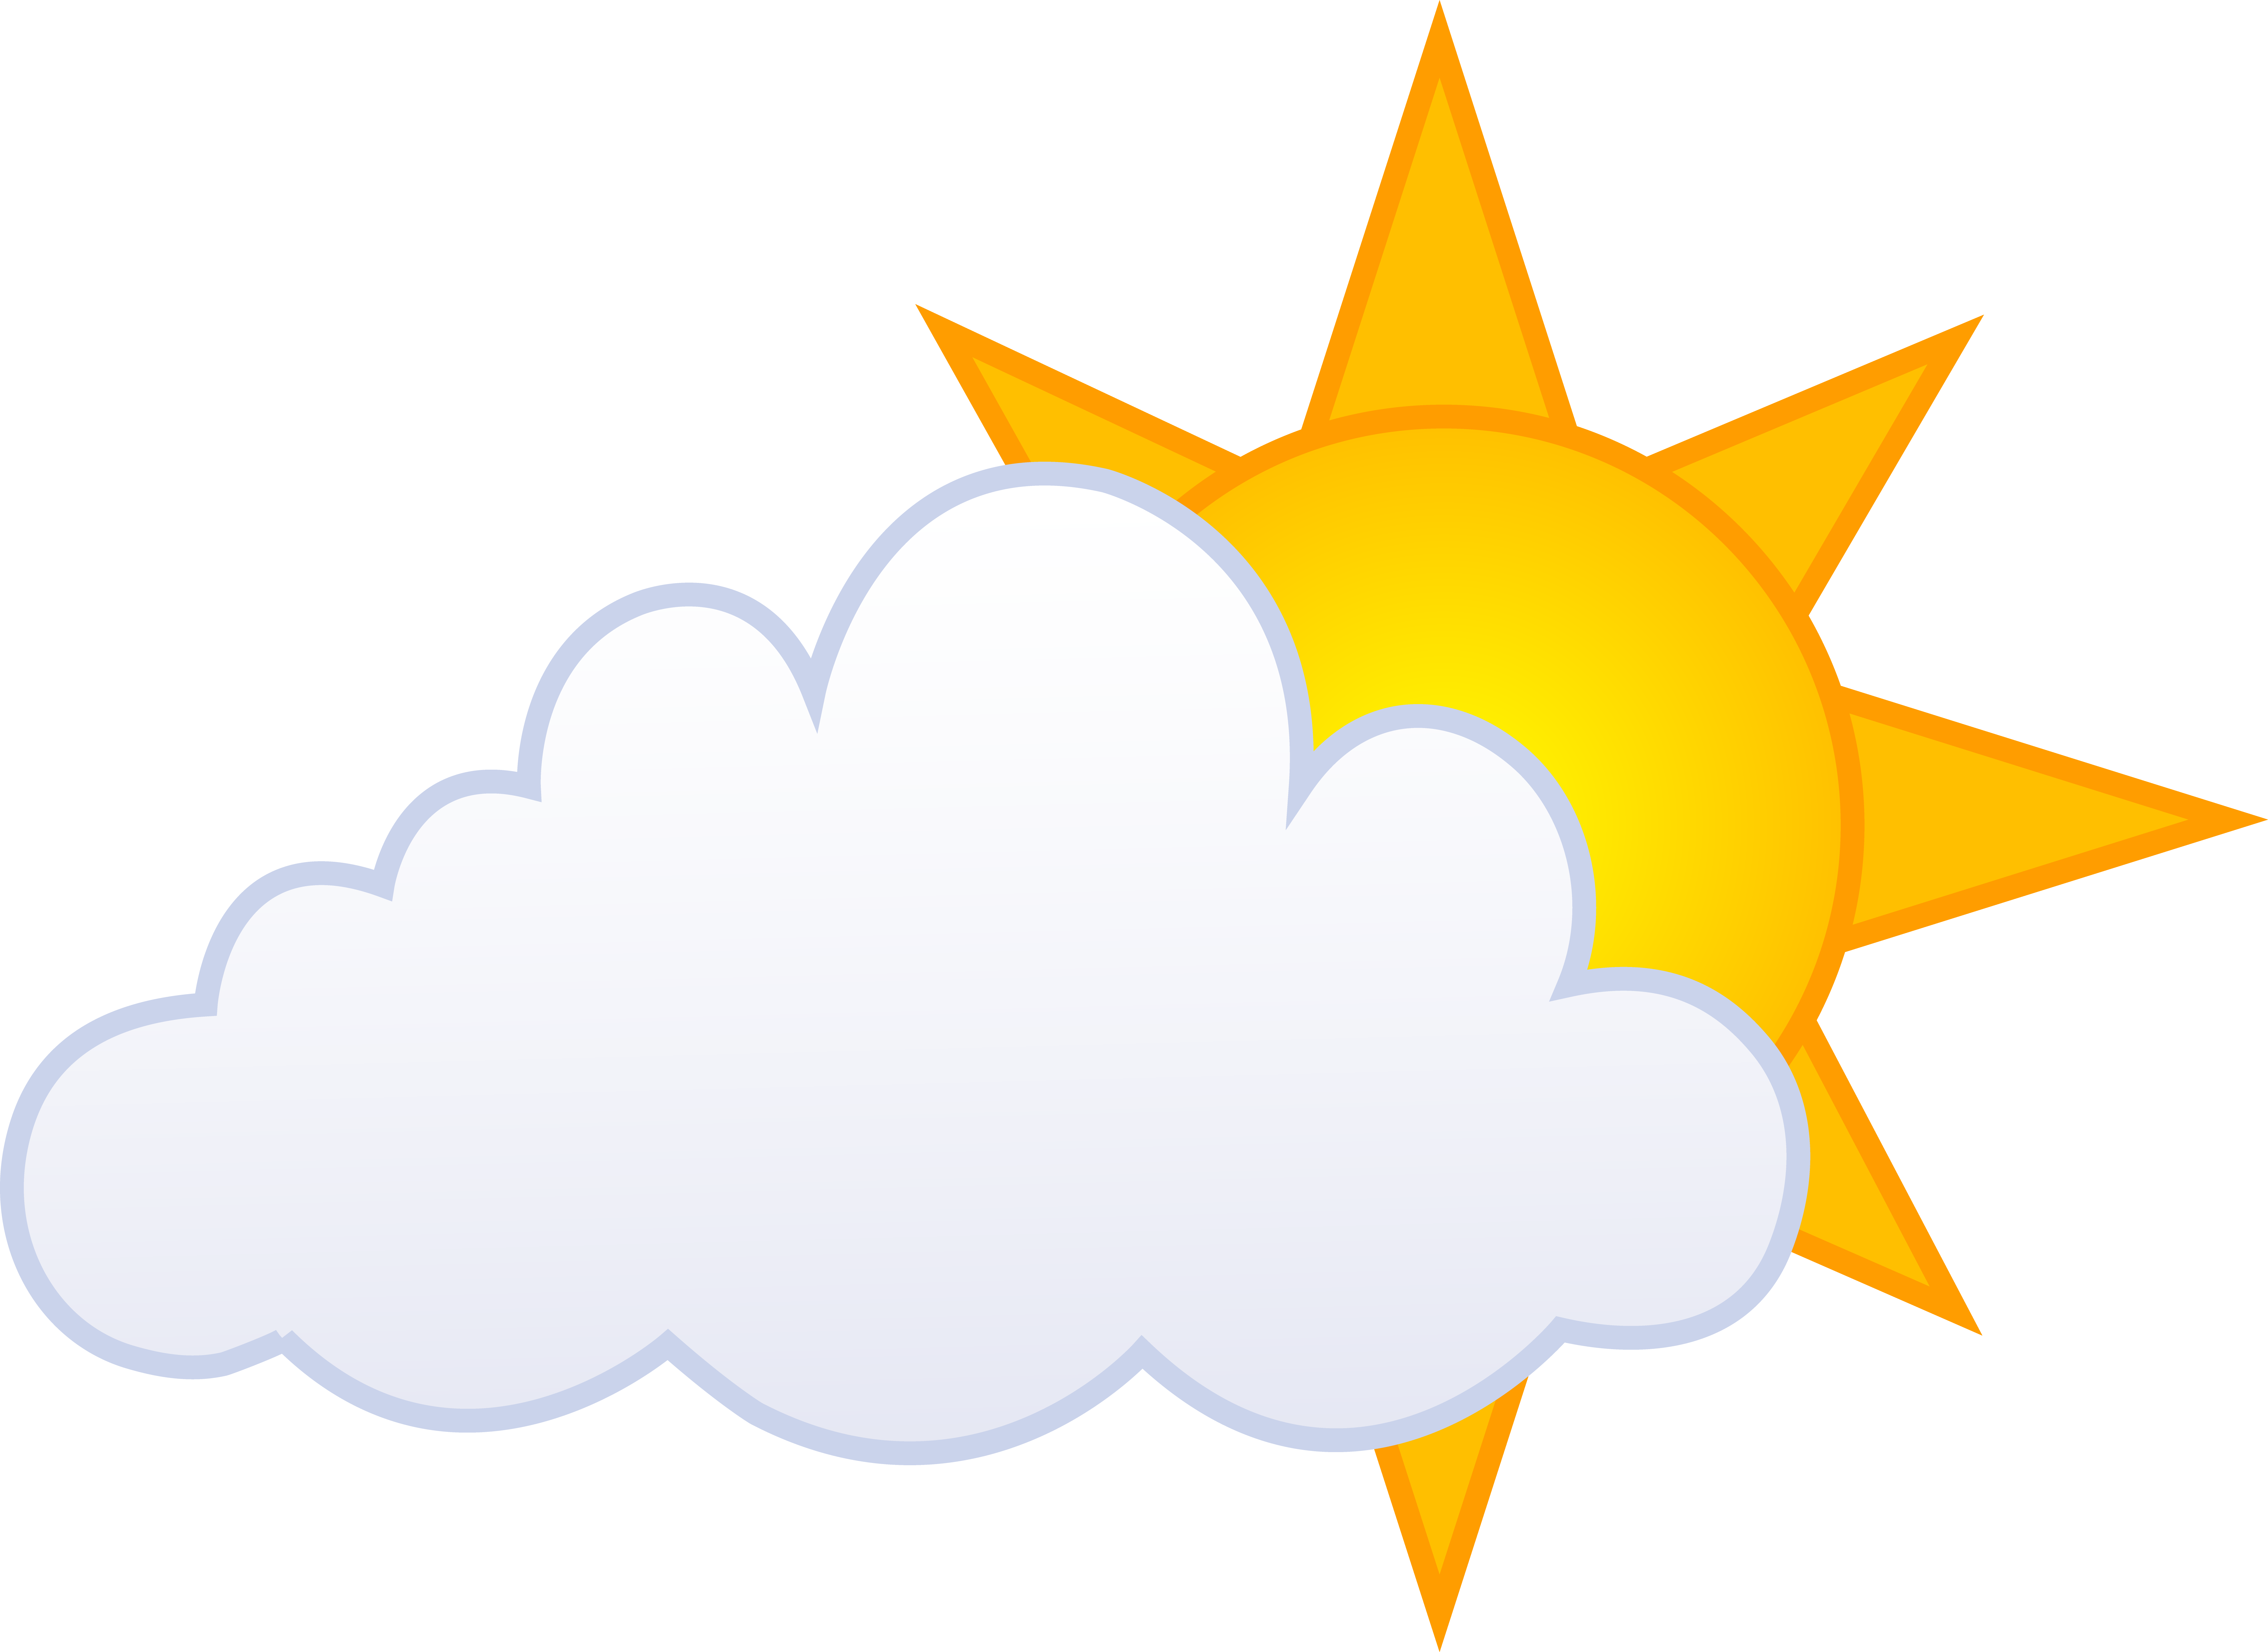 Sunny day with clouds clipart banner free stock Free Sunny Day Clipart, Download Free Clip Art, Free Clip ... banner free stock